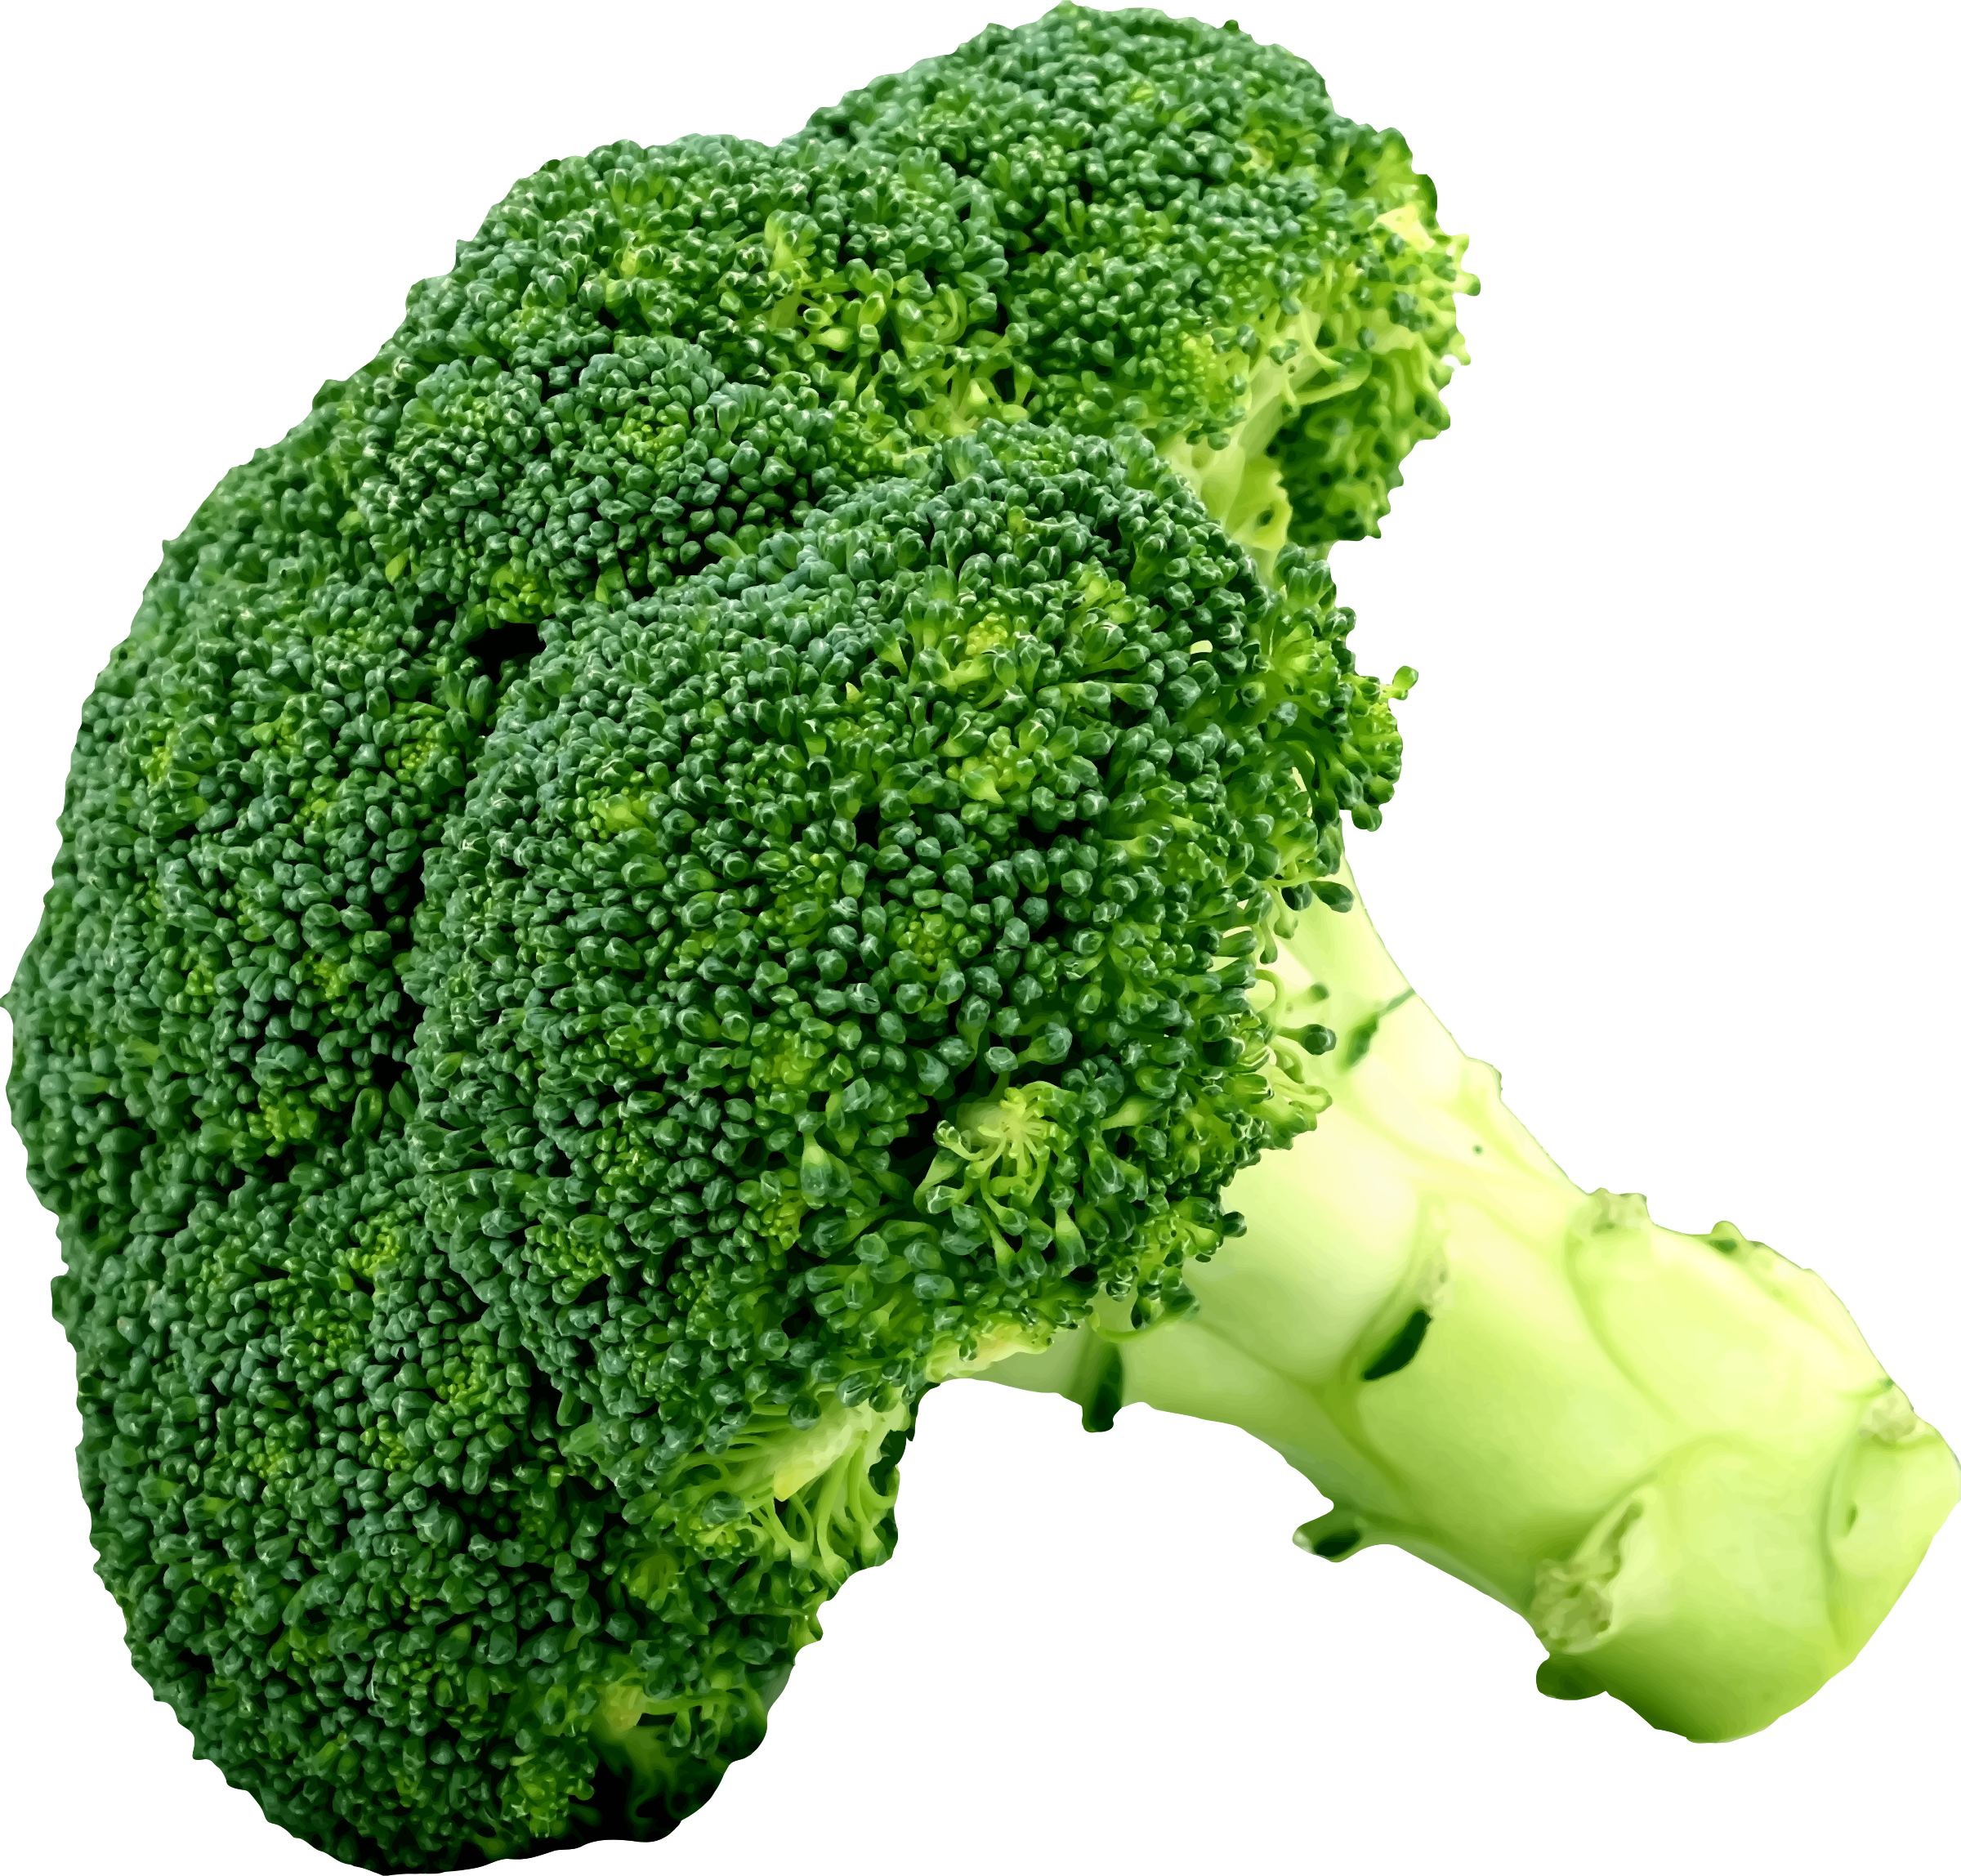 picture library Big image png. Broccoli clipart